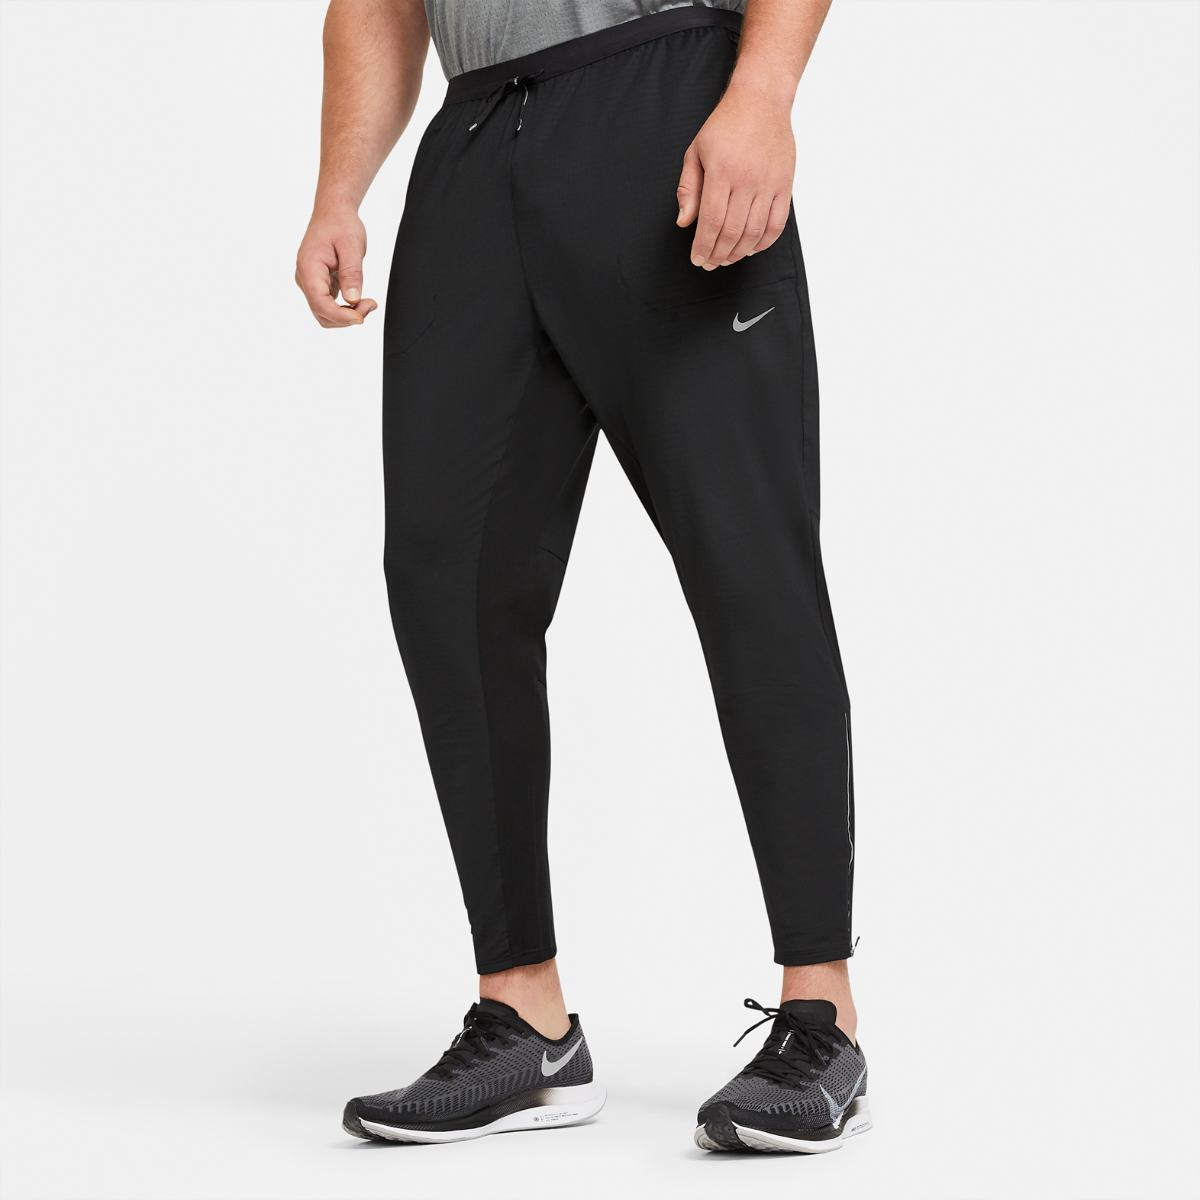 Брюки NIKE M NK DF PHENOM ELITE KNIT PANT